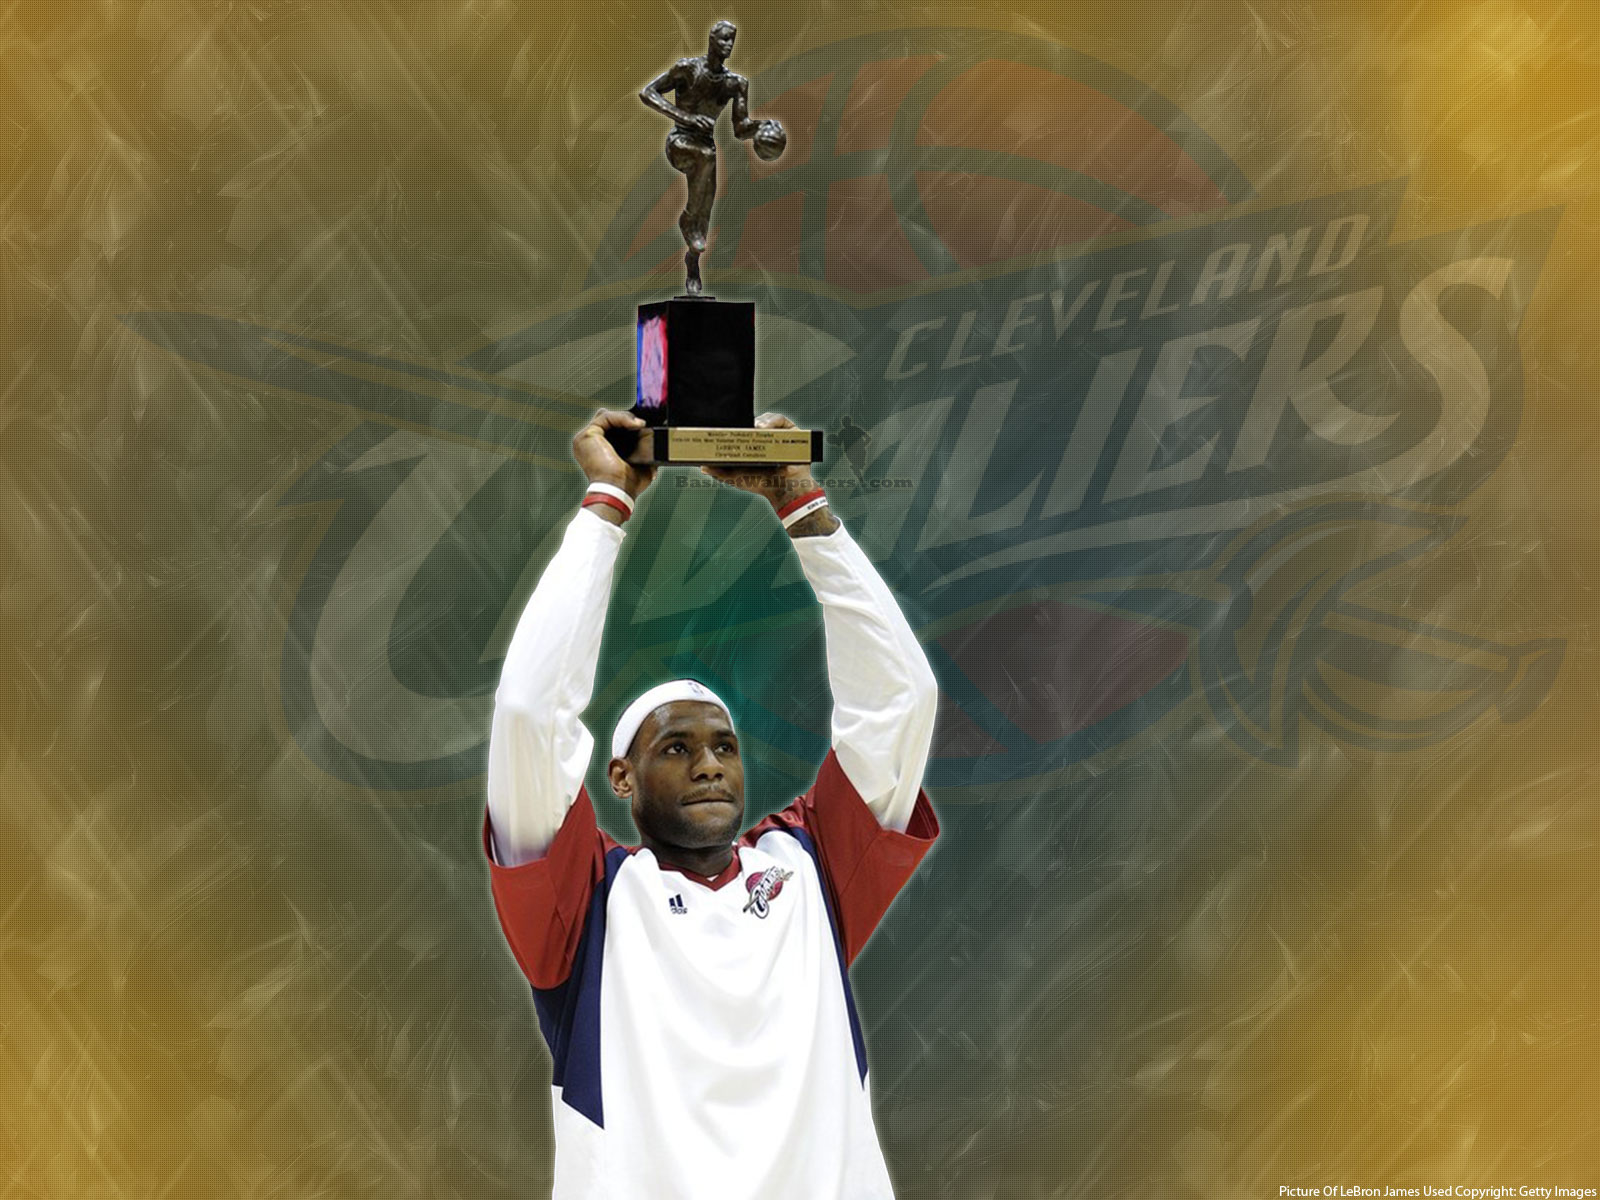 lebron james 2009